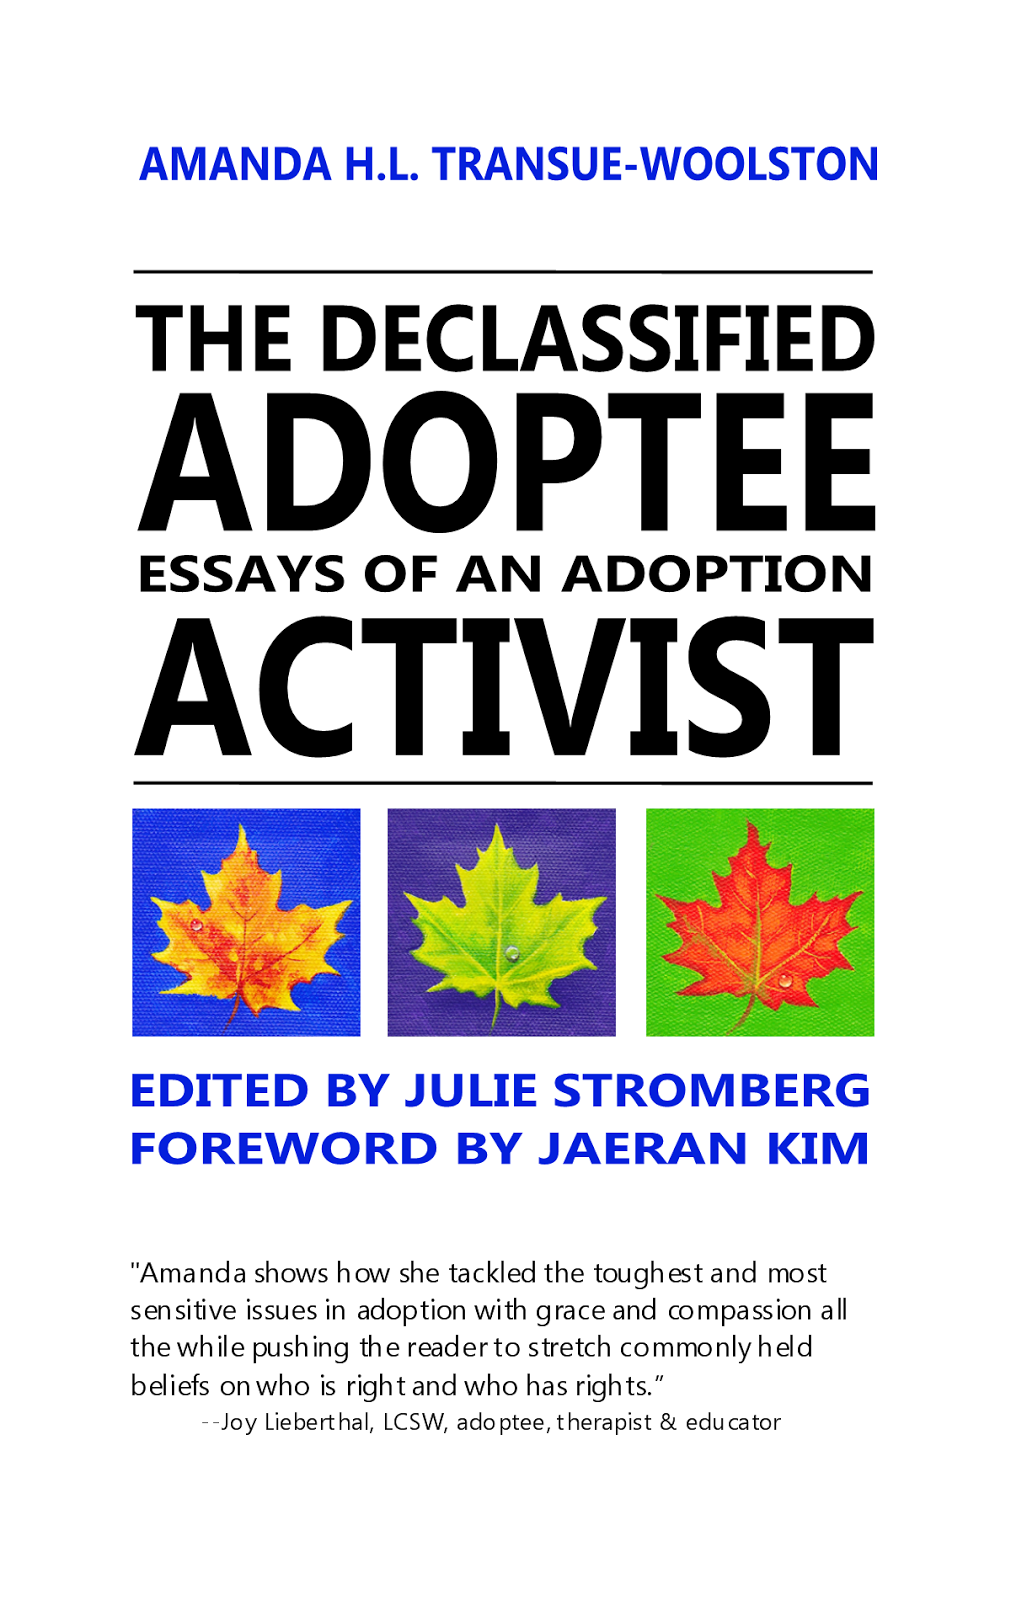 the declassified adoptee my book the declassified adoptee essays of an adoption activist features a collection of essays authored by amanda h l transue woolston